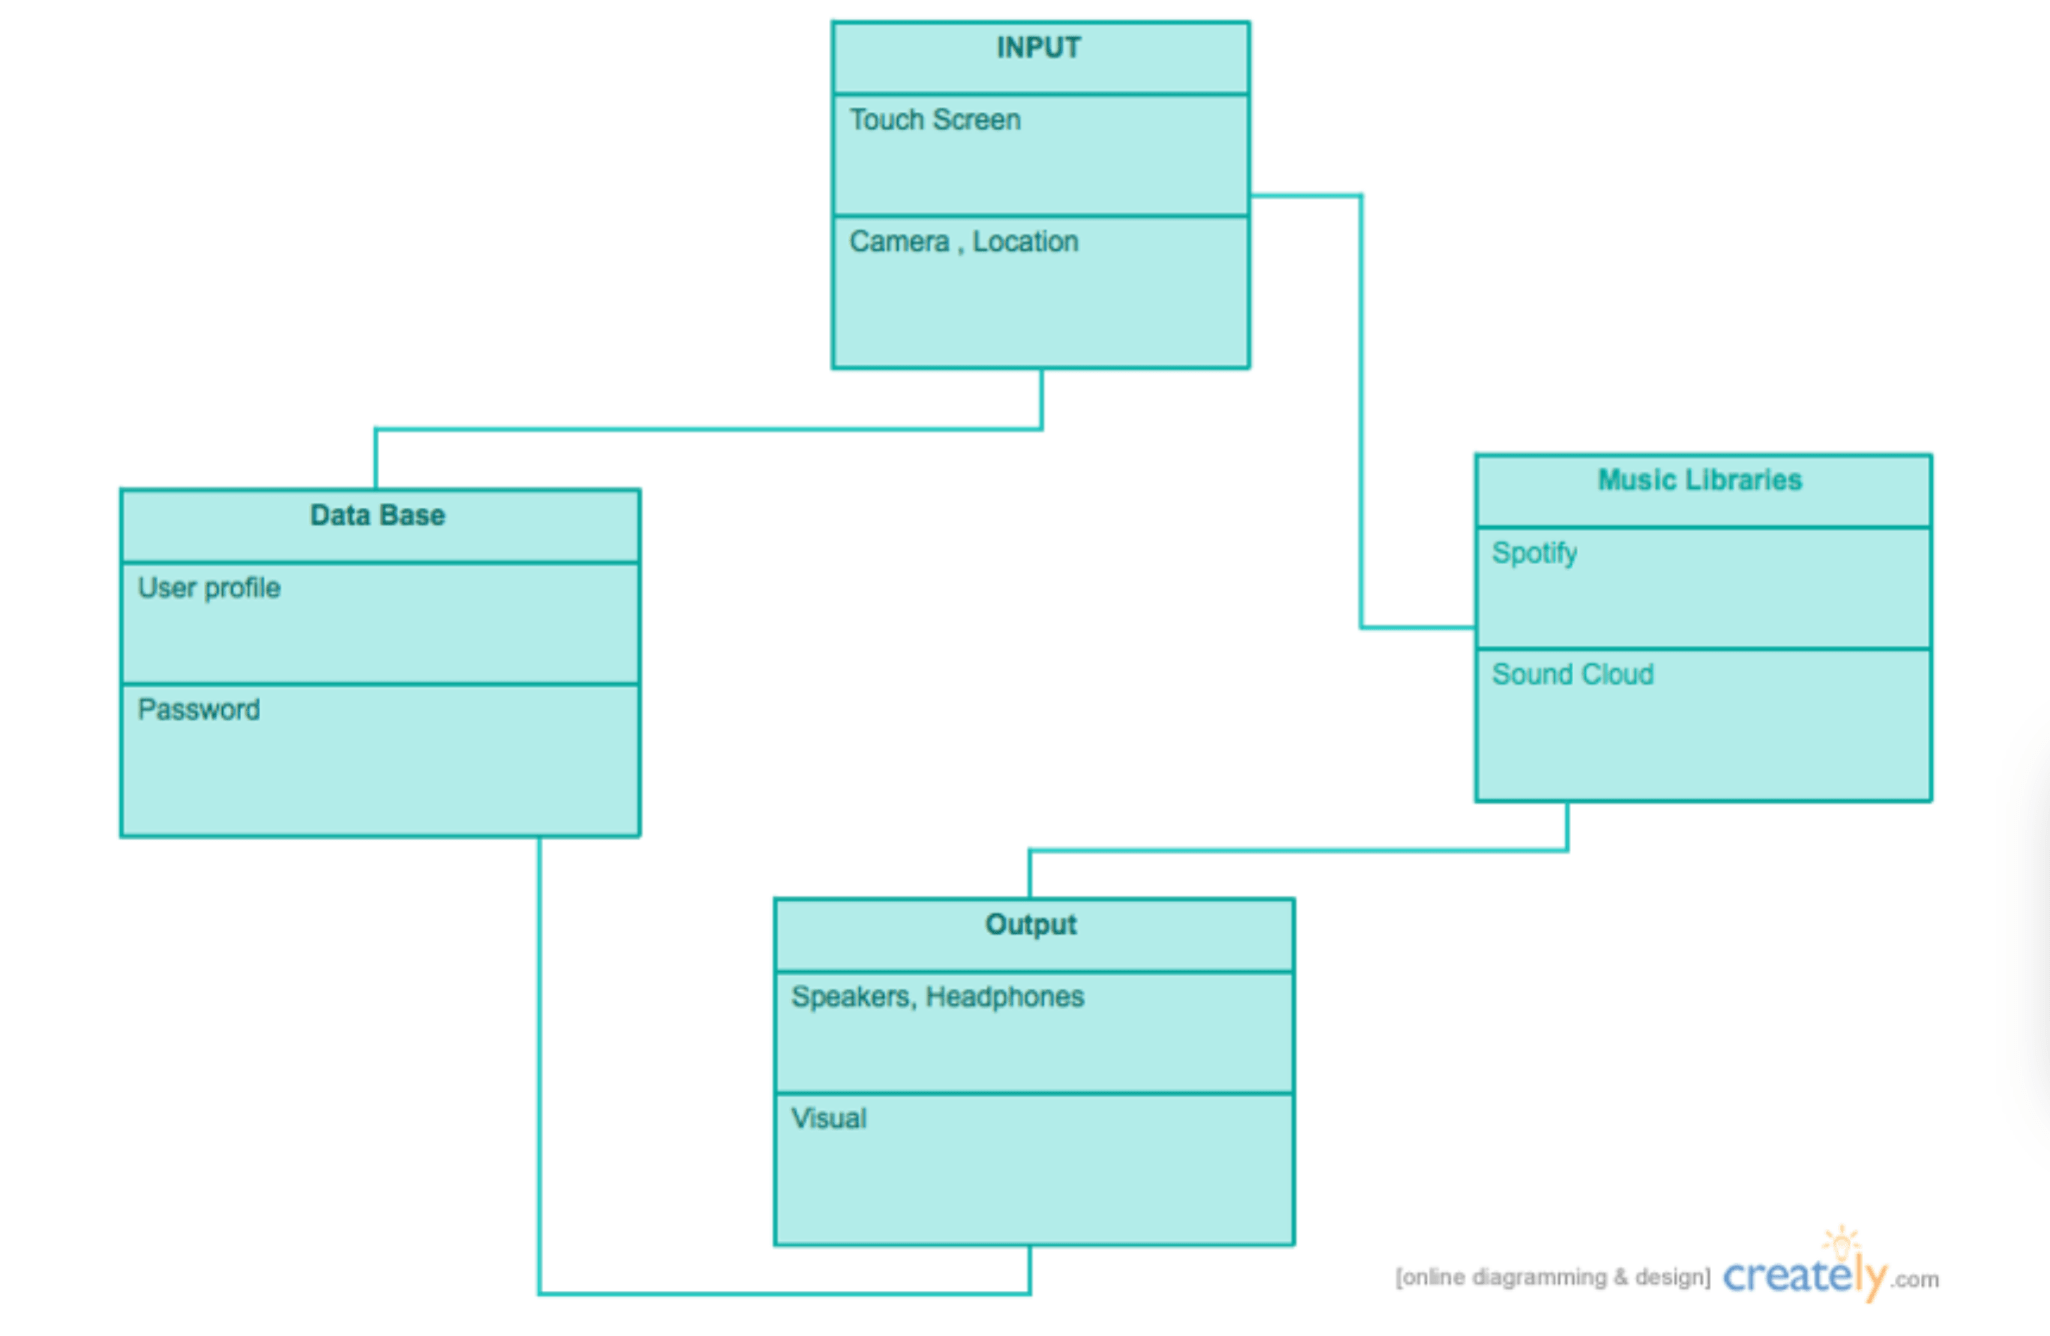 uml component diagram database management application 120 240 volt motor wiring of the app inputs and outputs  certainlyakey